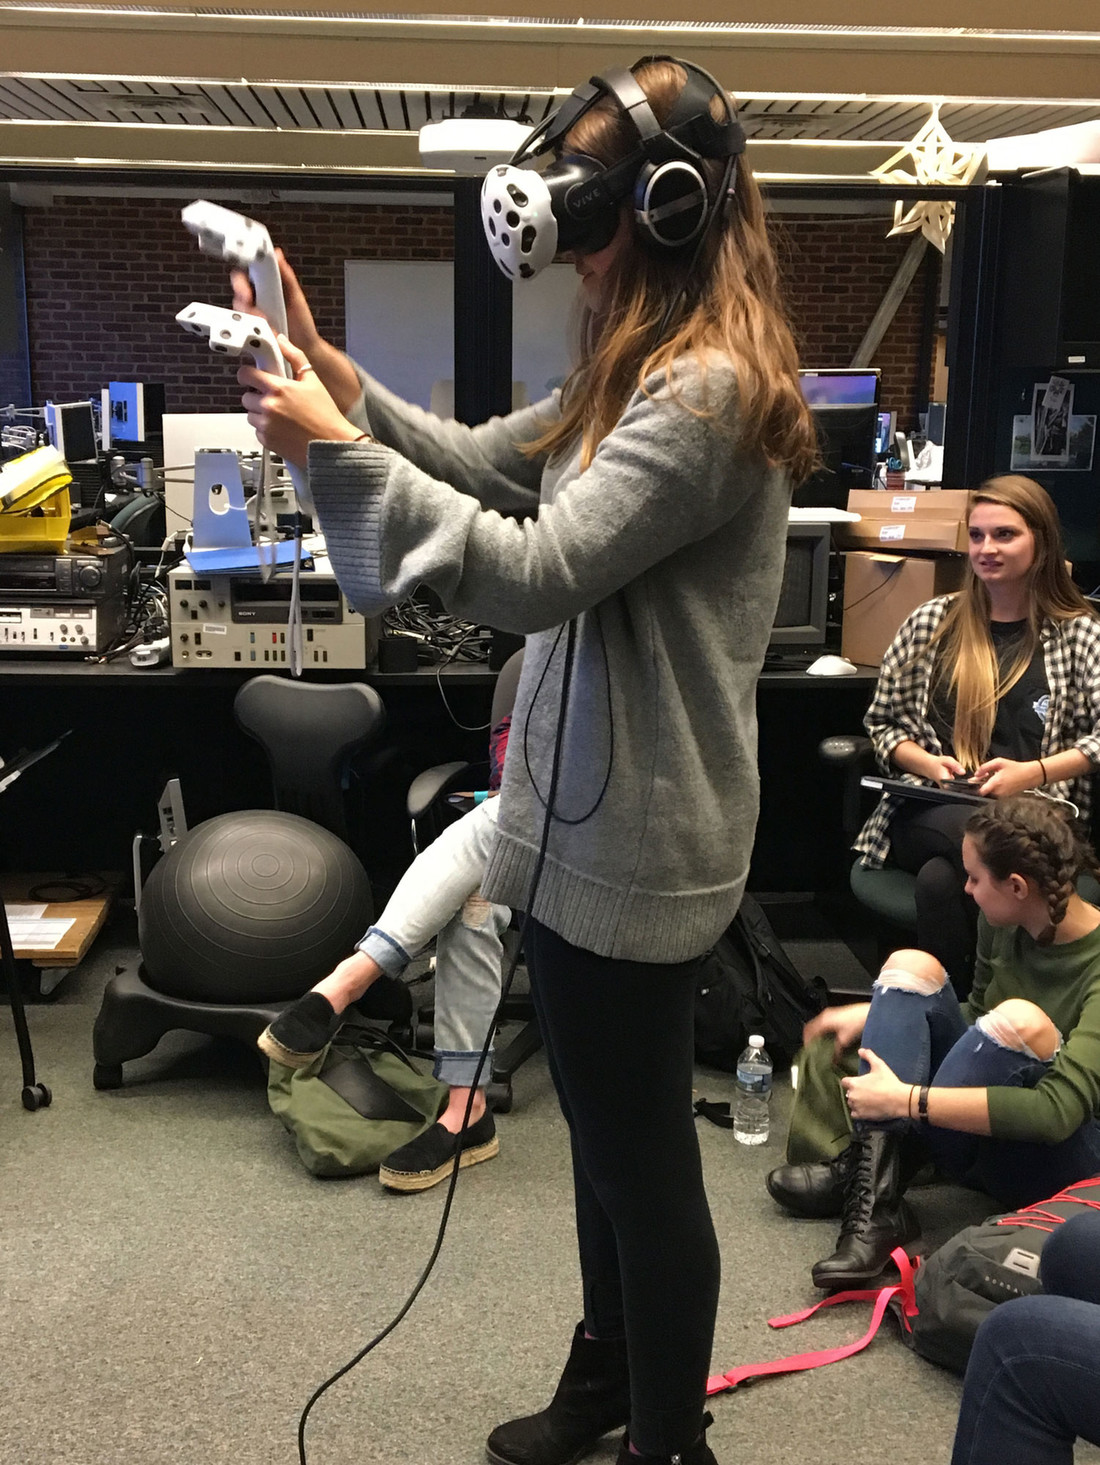 Archaeology student using virtual reality glasses